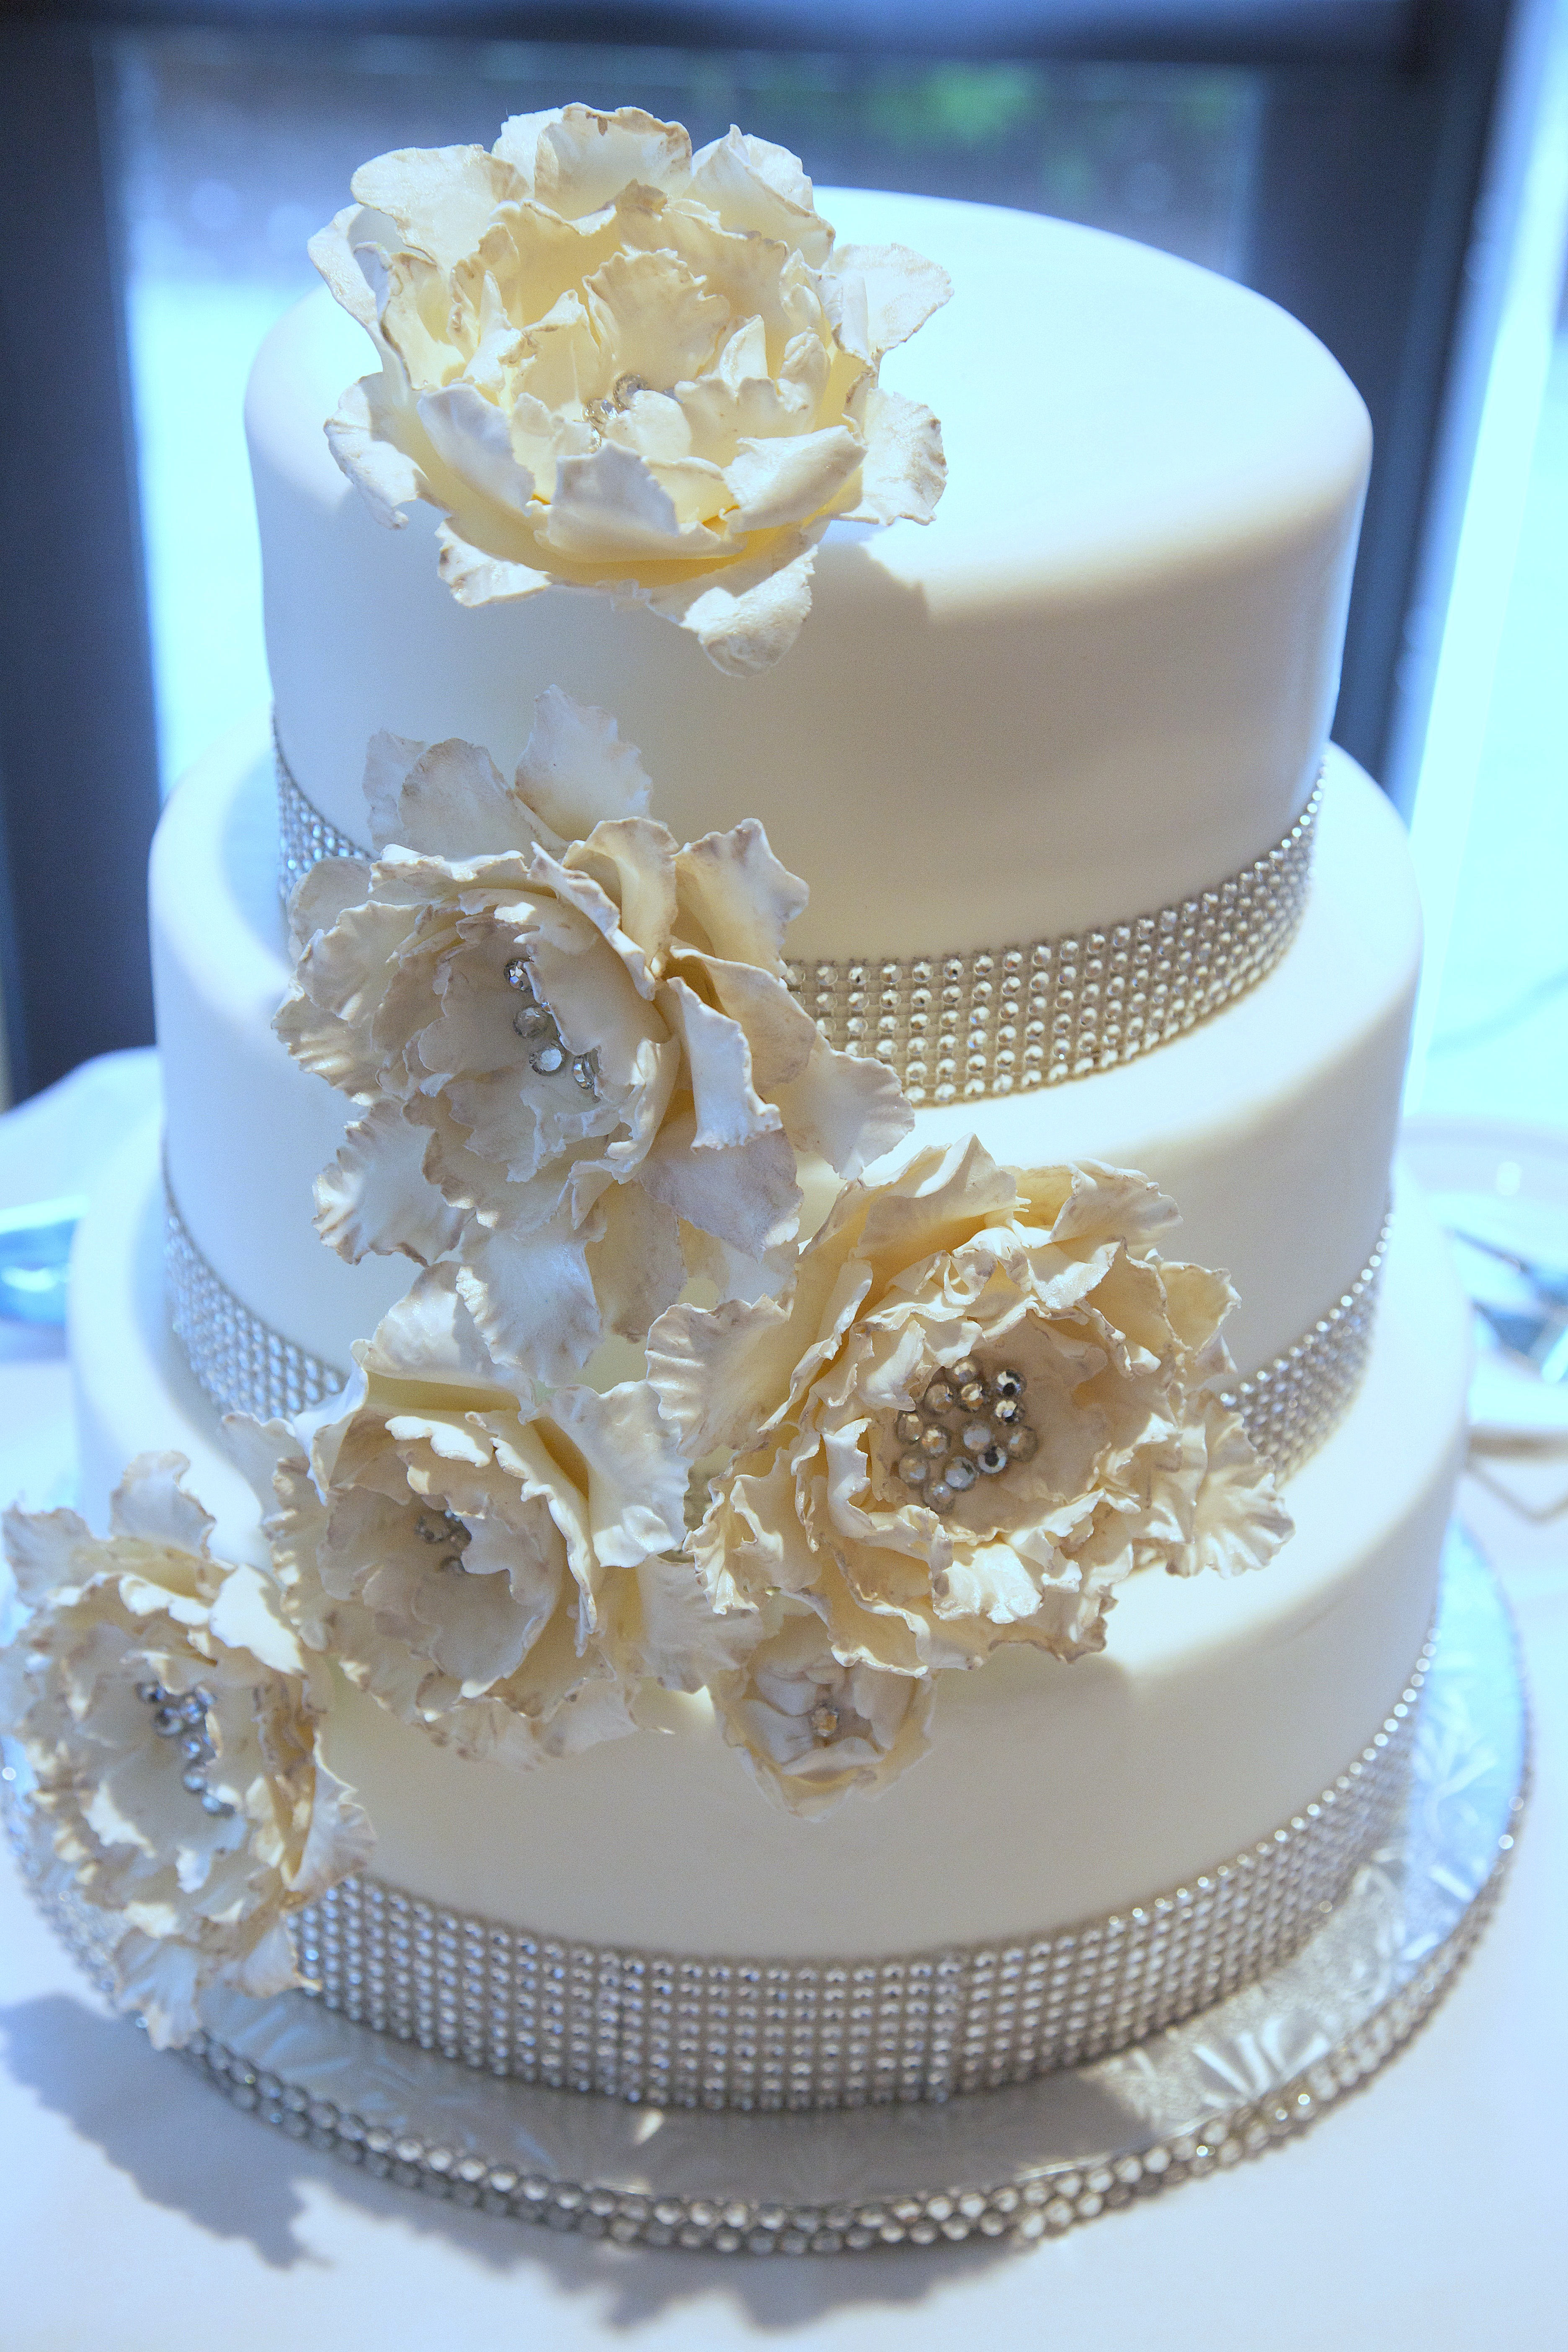 Mariahs Sphere Passion Inspiration And Thoughts About Life By - Sphere Wedding Cake